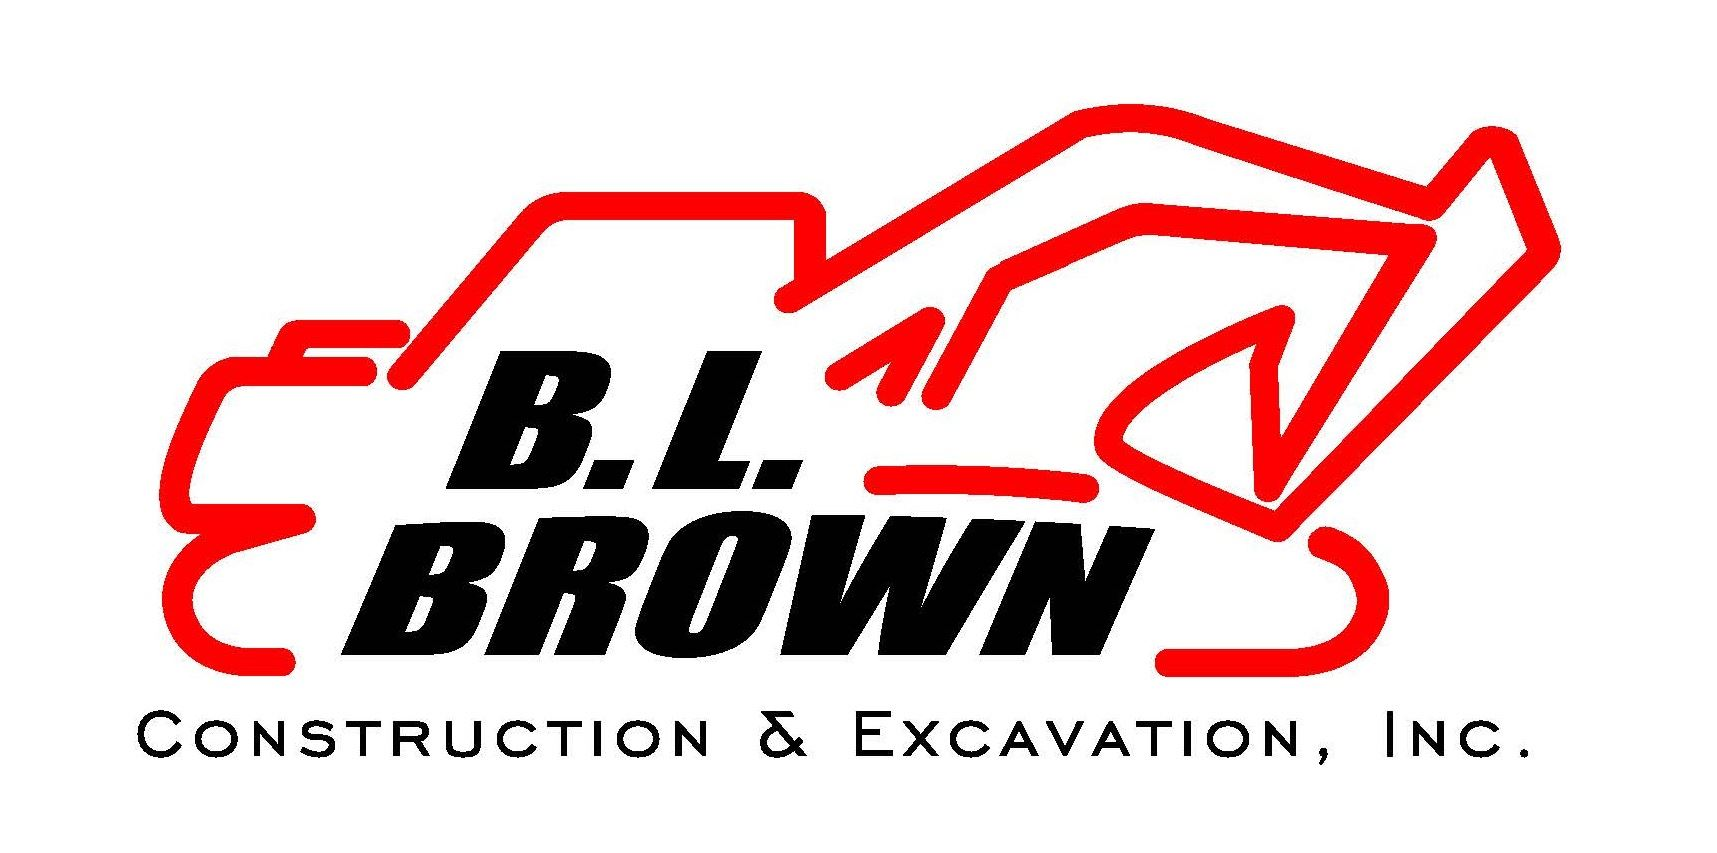 Go to B.L. Brown Constrruction & Excavation, Inc.